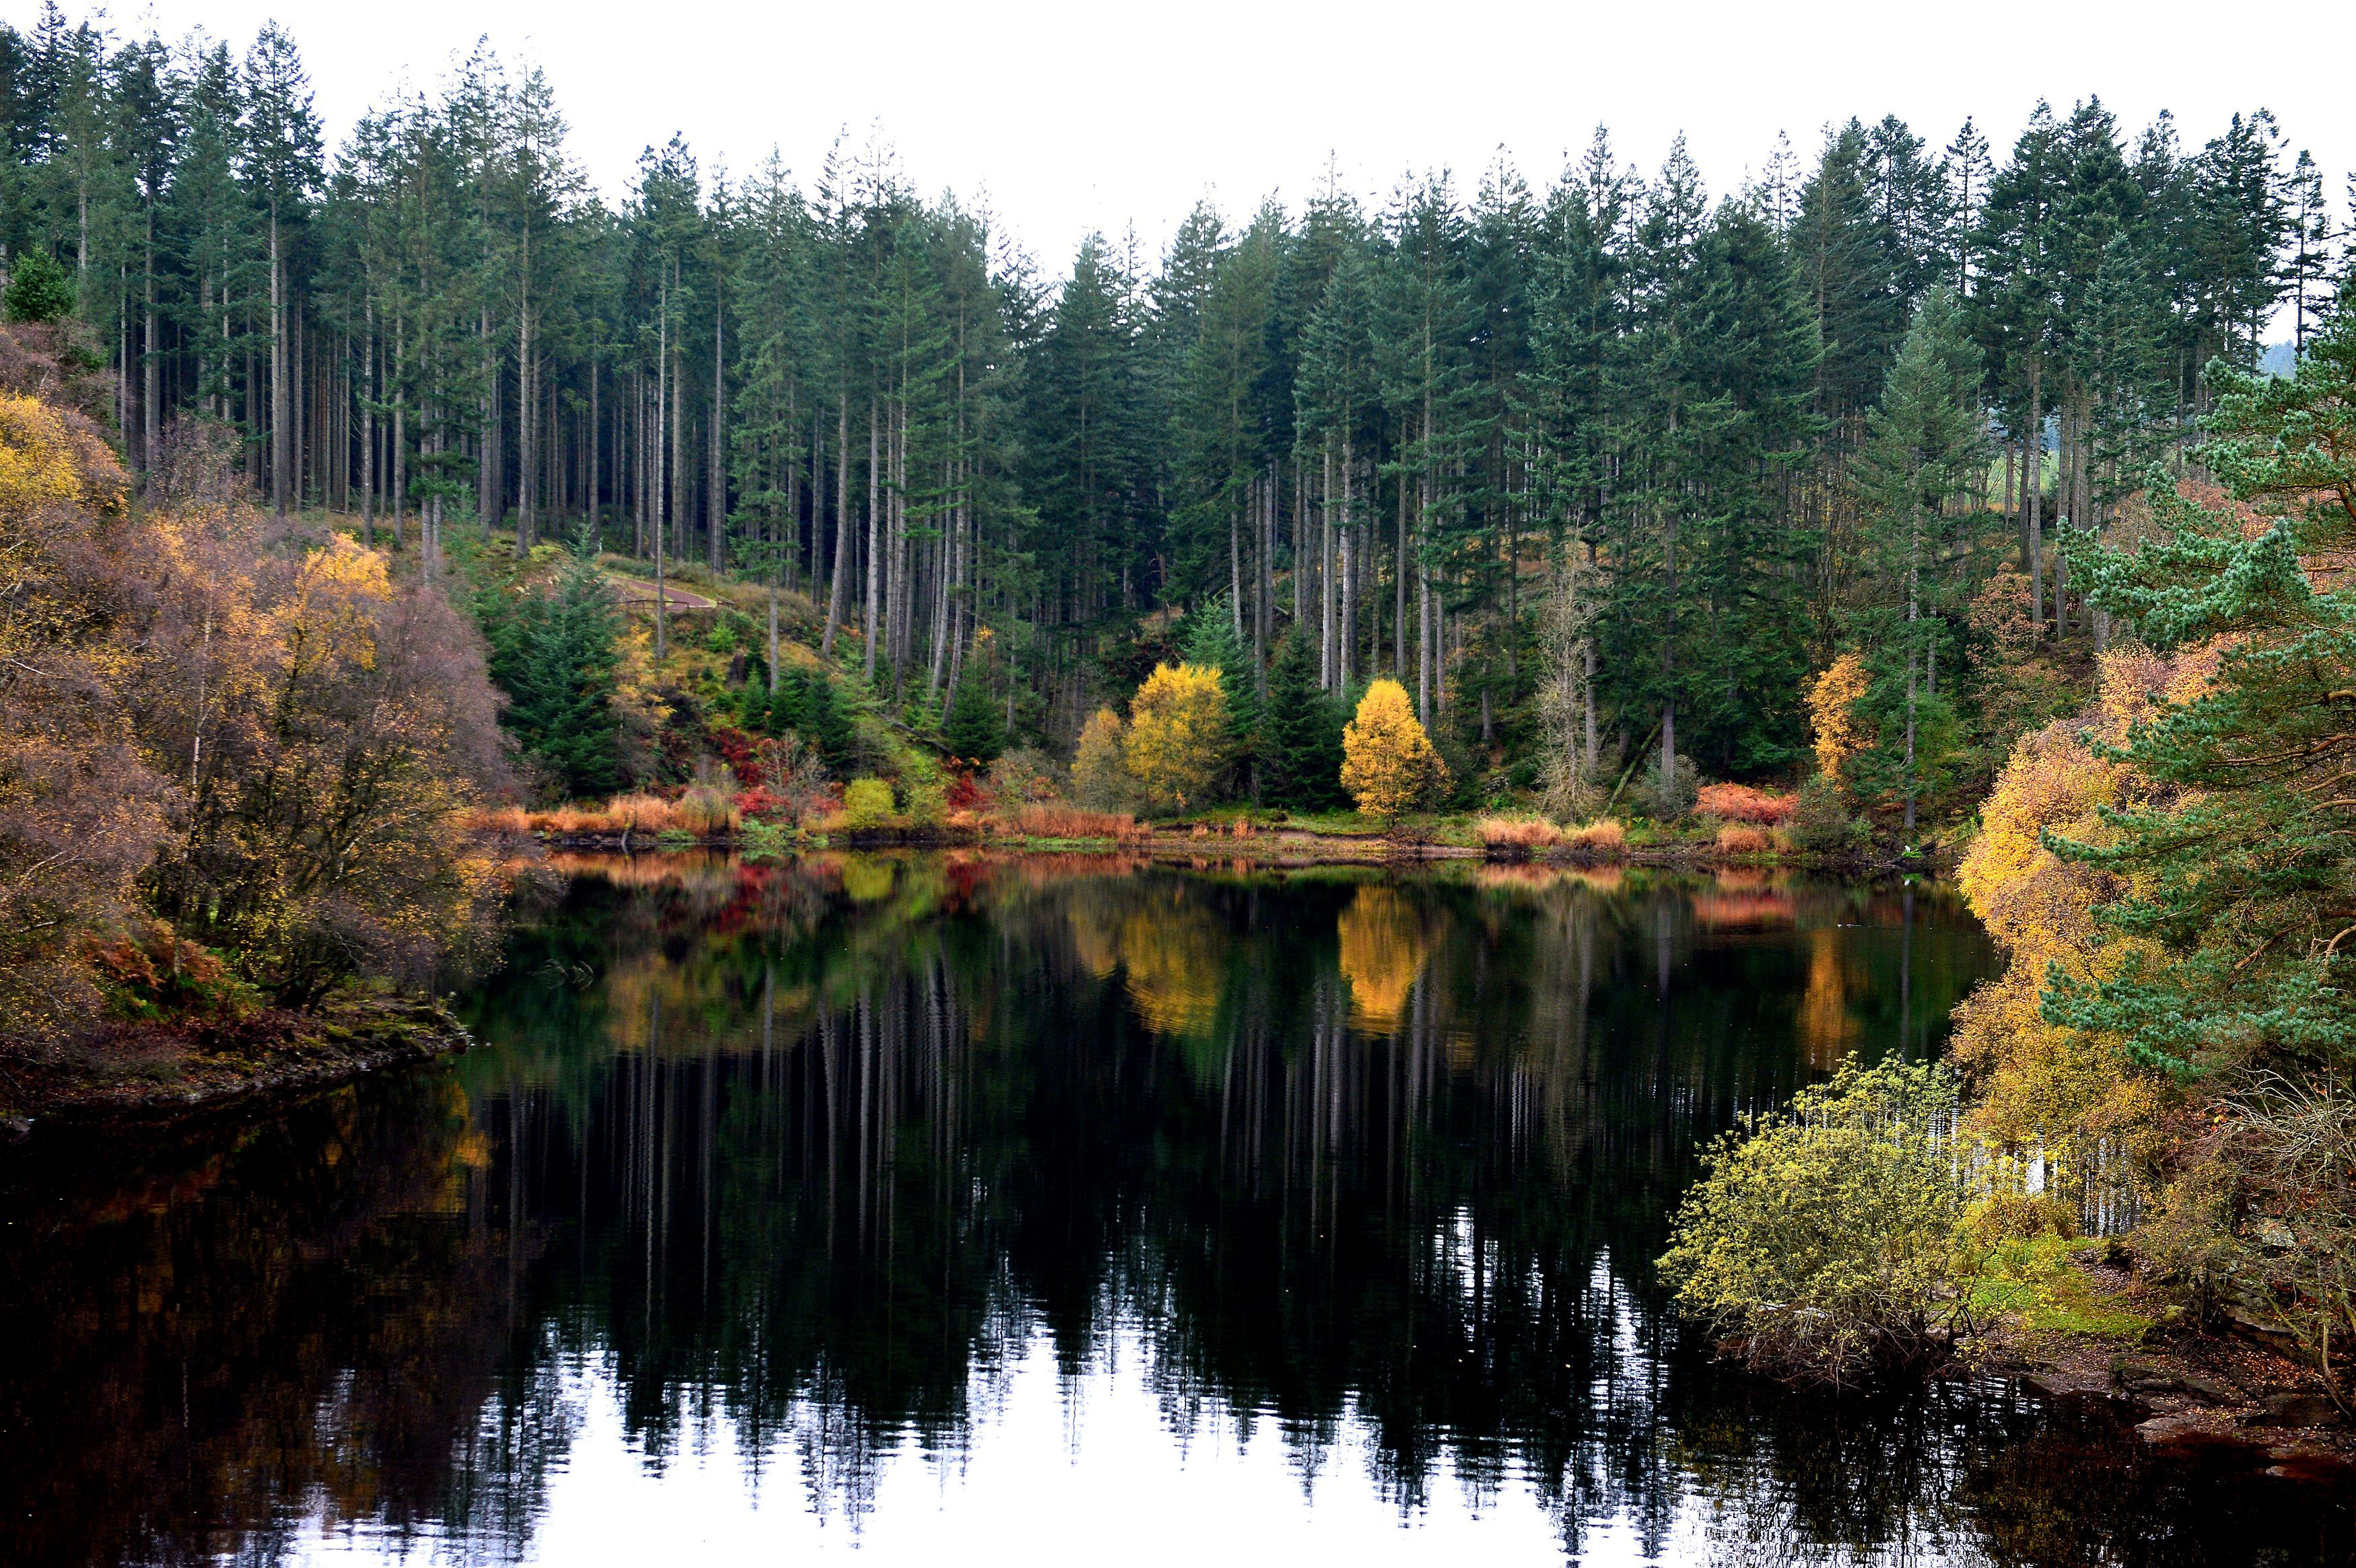 Kielder Water and Forest Park in Northumberland.